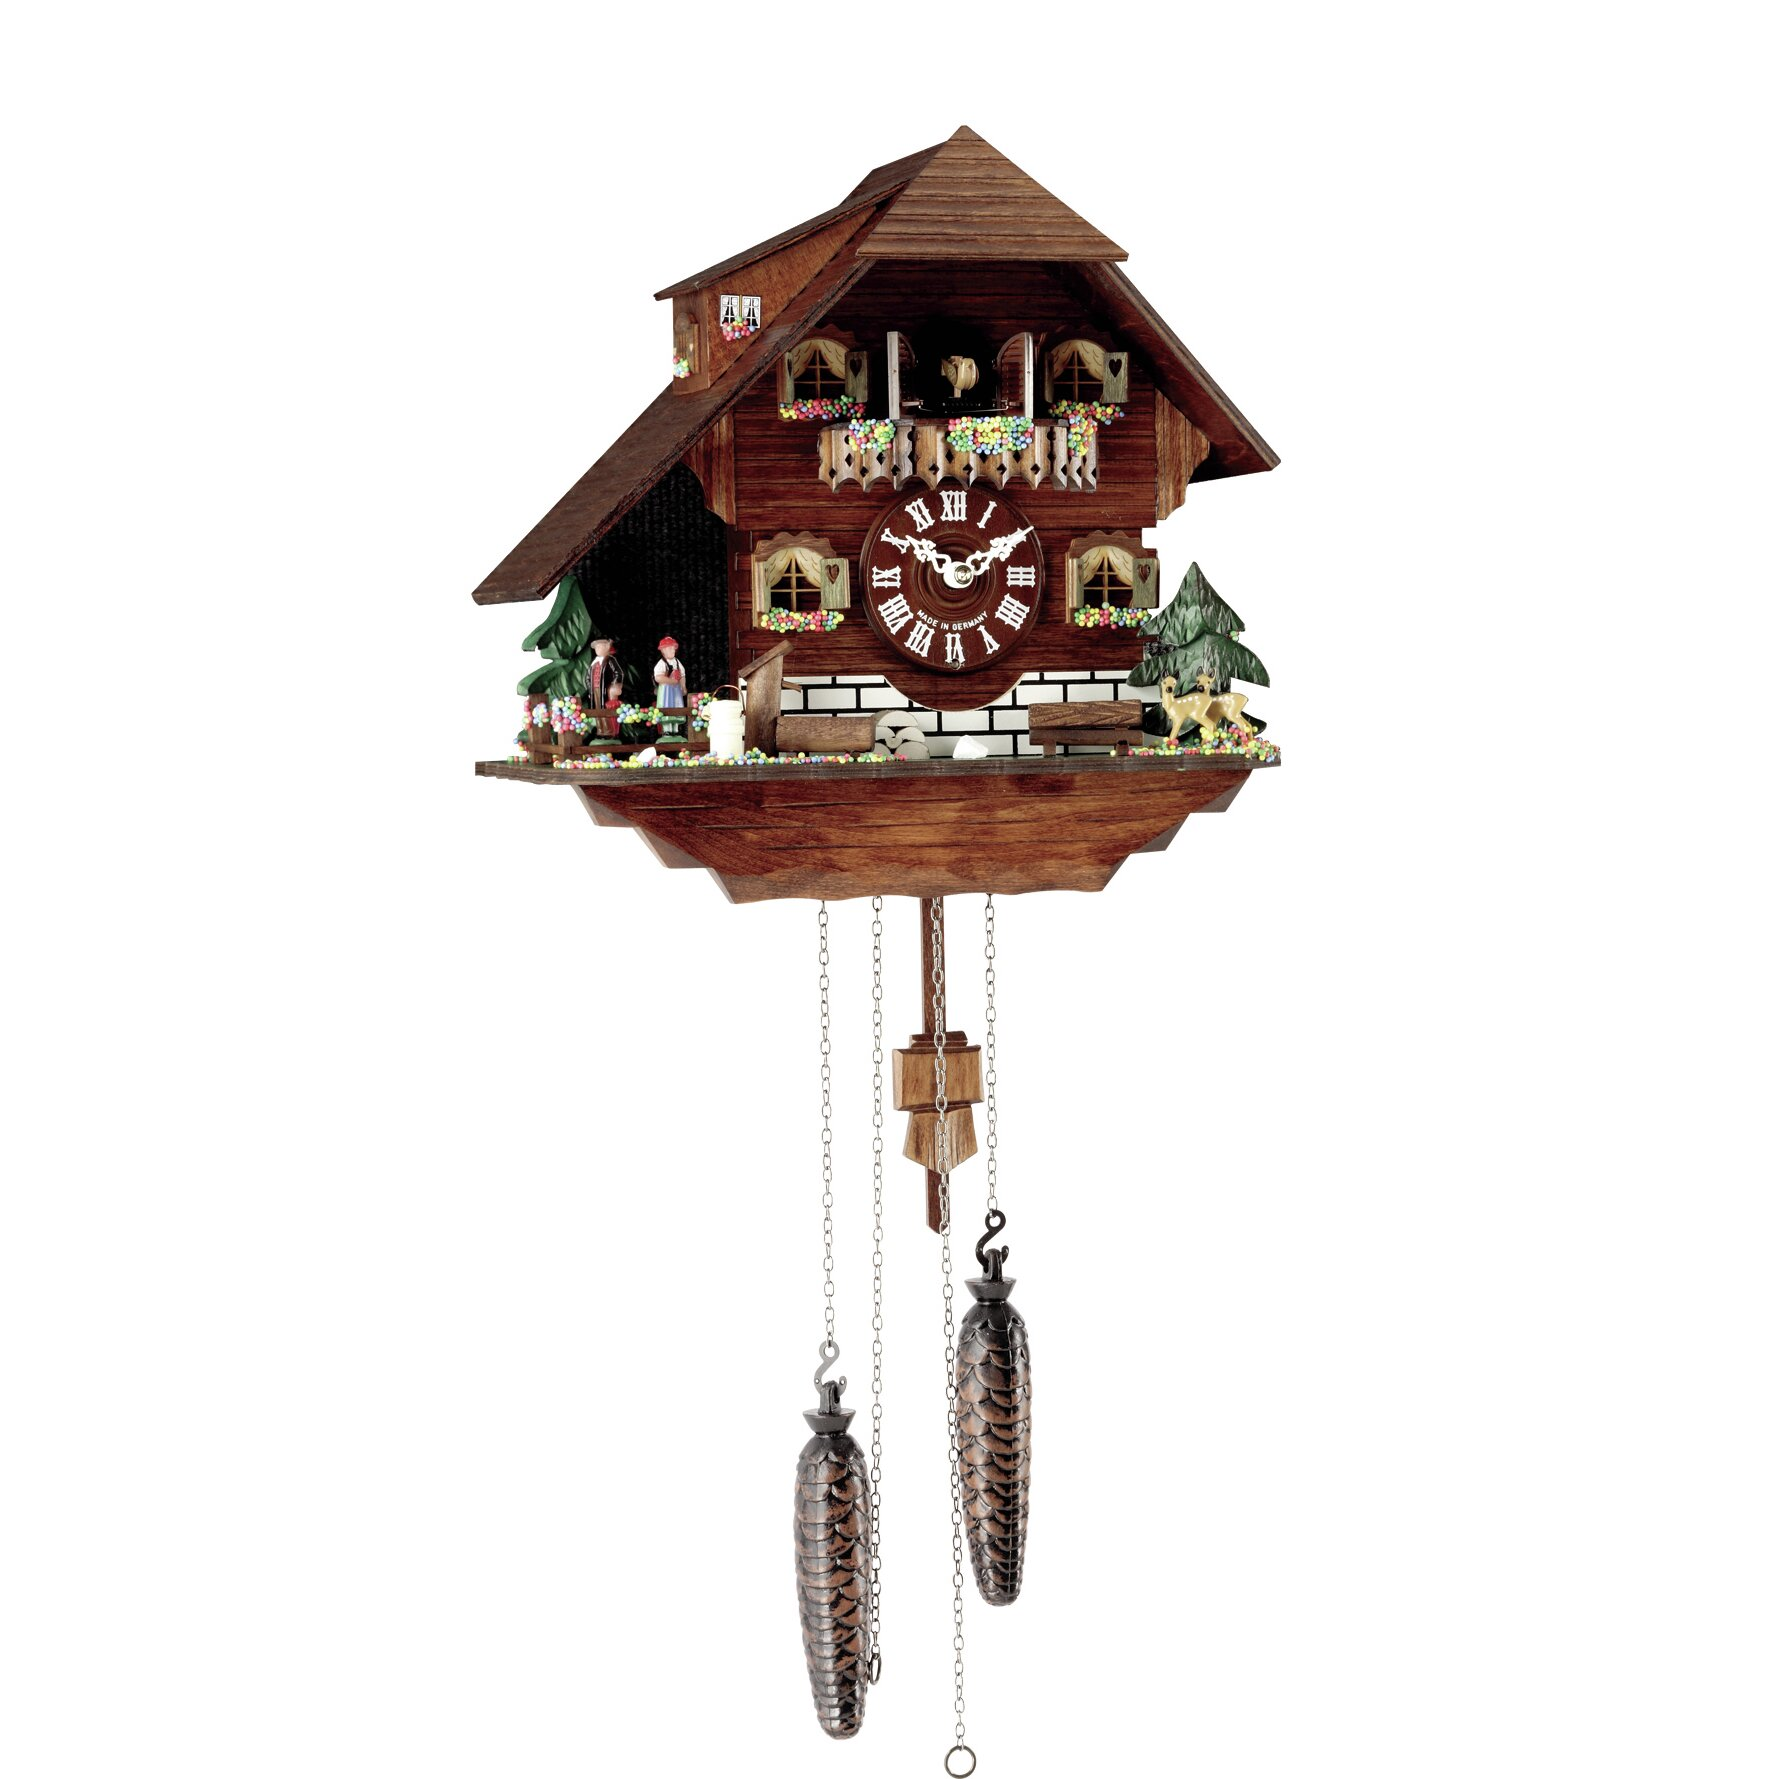 Hermle Clocks Cuckoo Clock u0026 Reviews : Wayfair